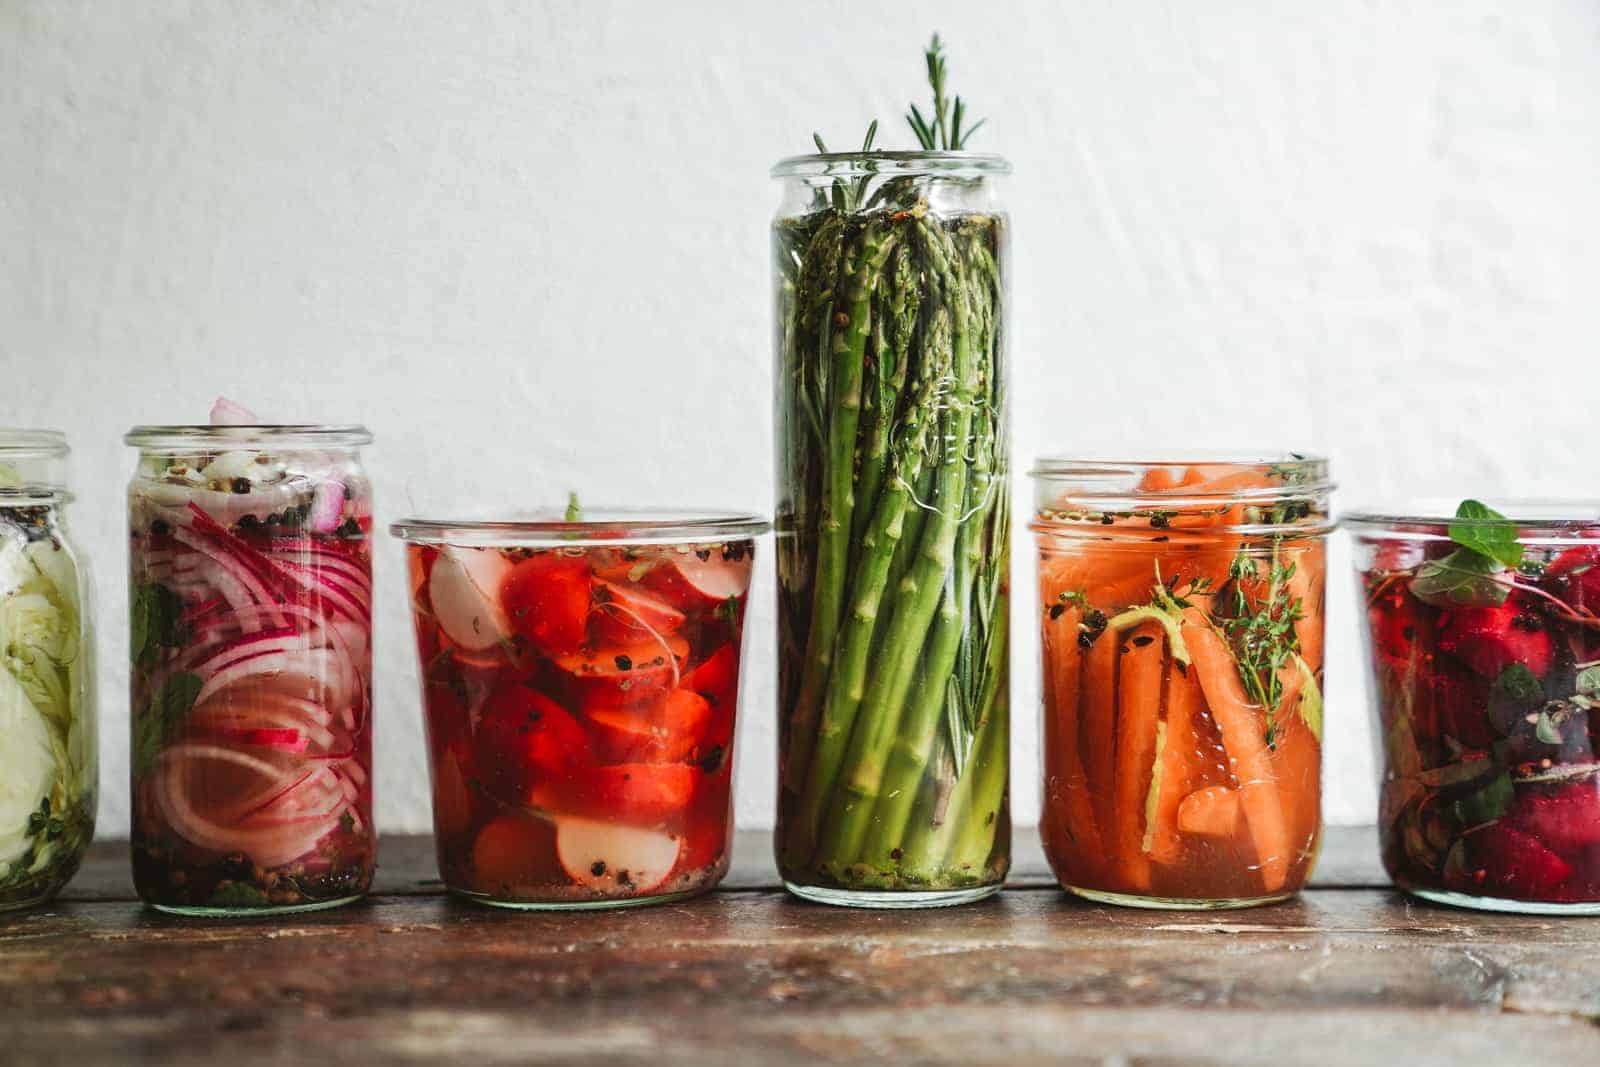 How to pickle vegetables.